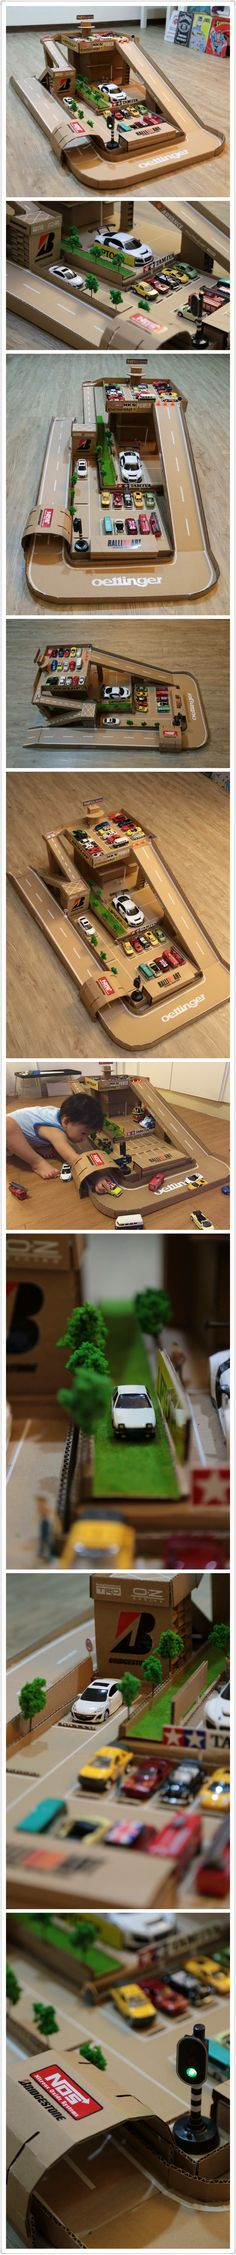 DIY toy car garage/car station/parking lots for my 2yrs son.Hope he won't destroy it too soon... source: @s2ob #toys #playtime #trukid